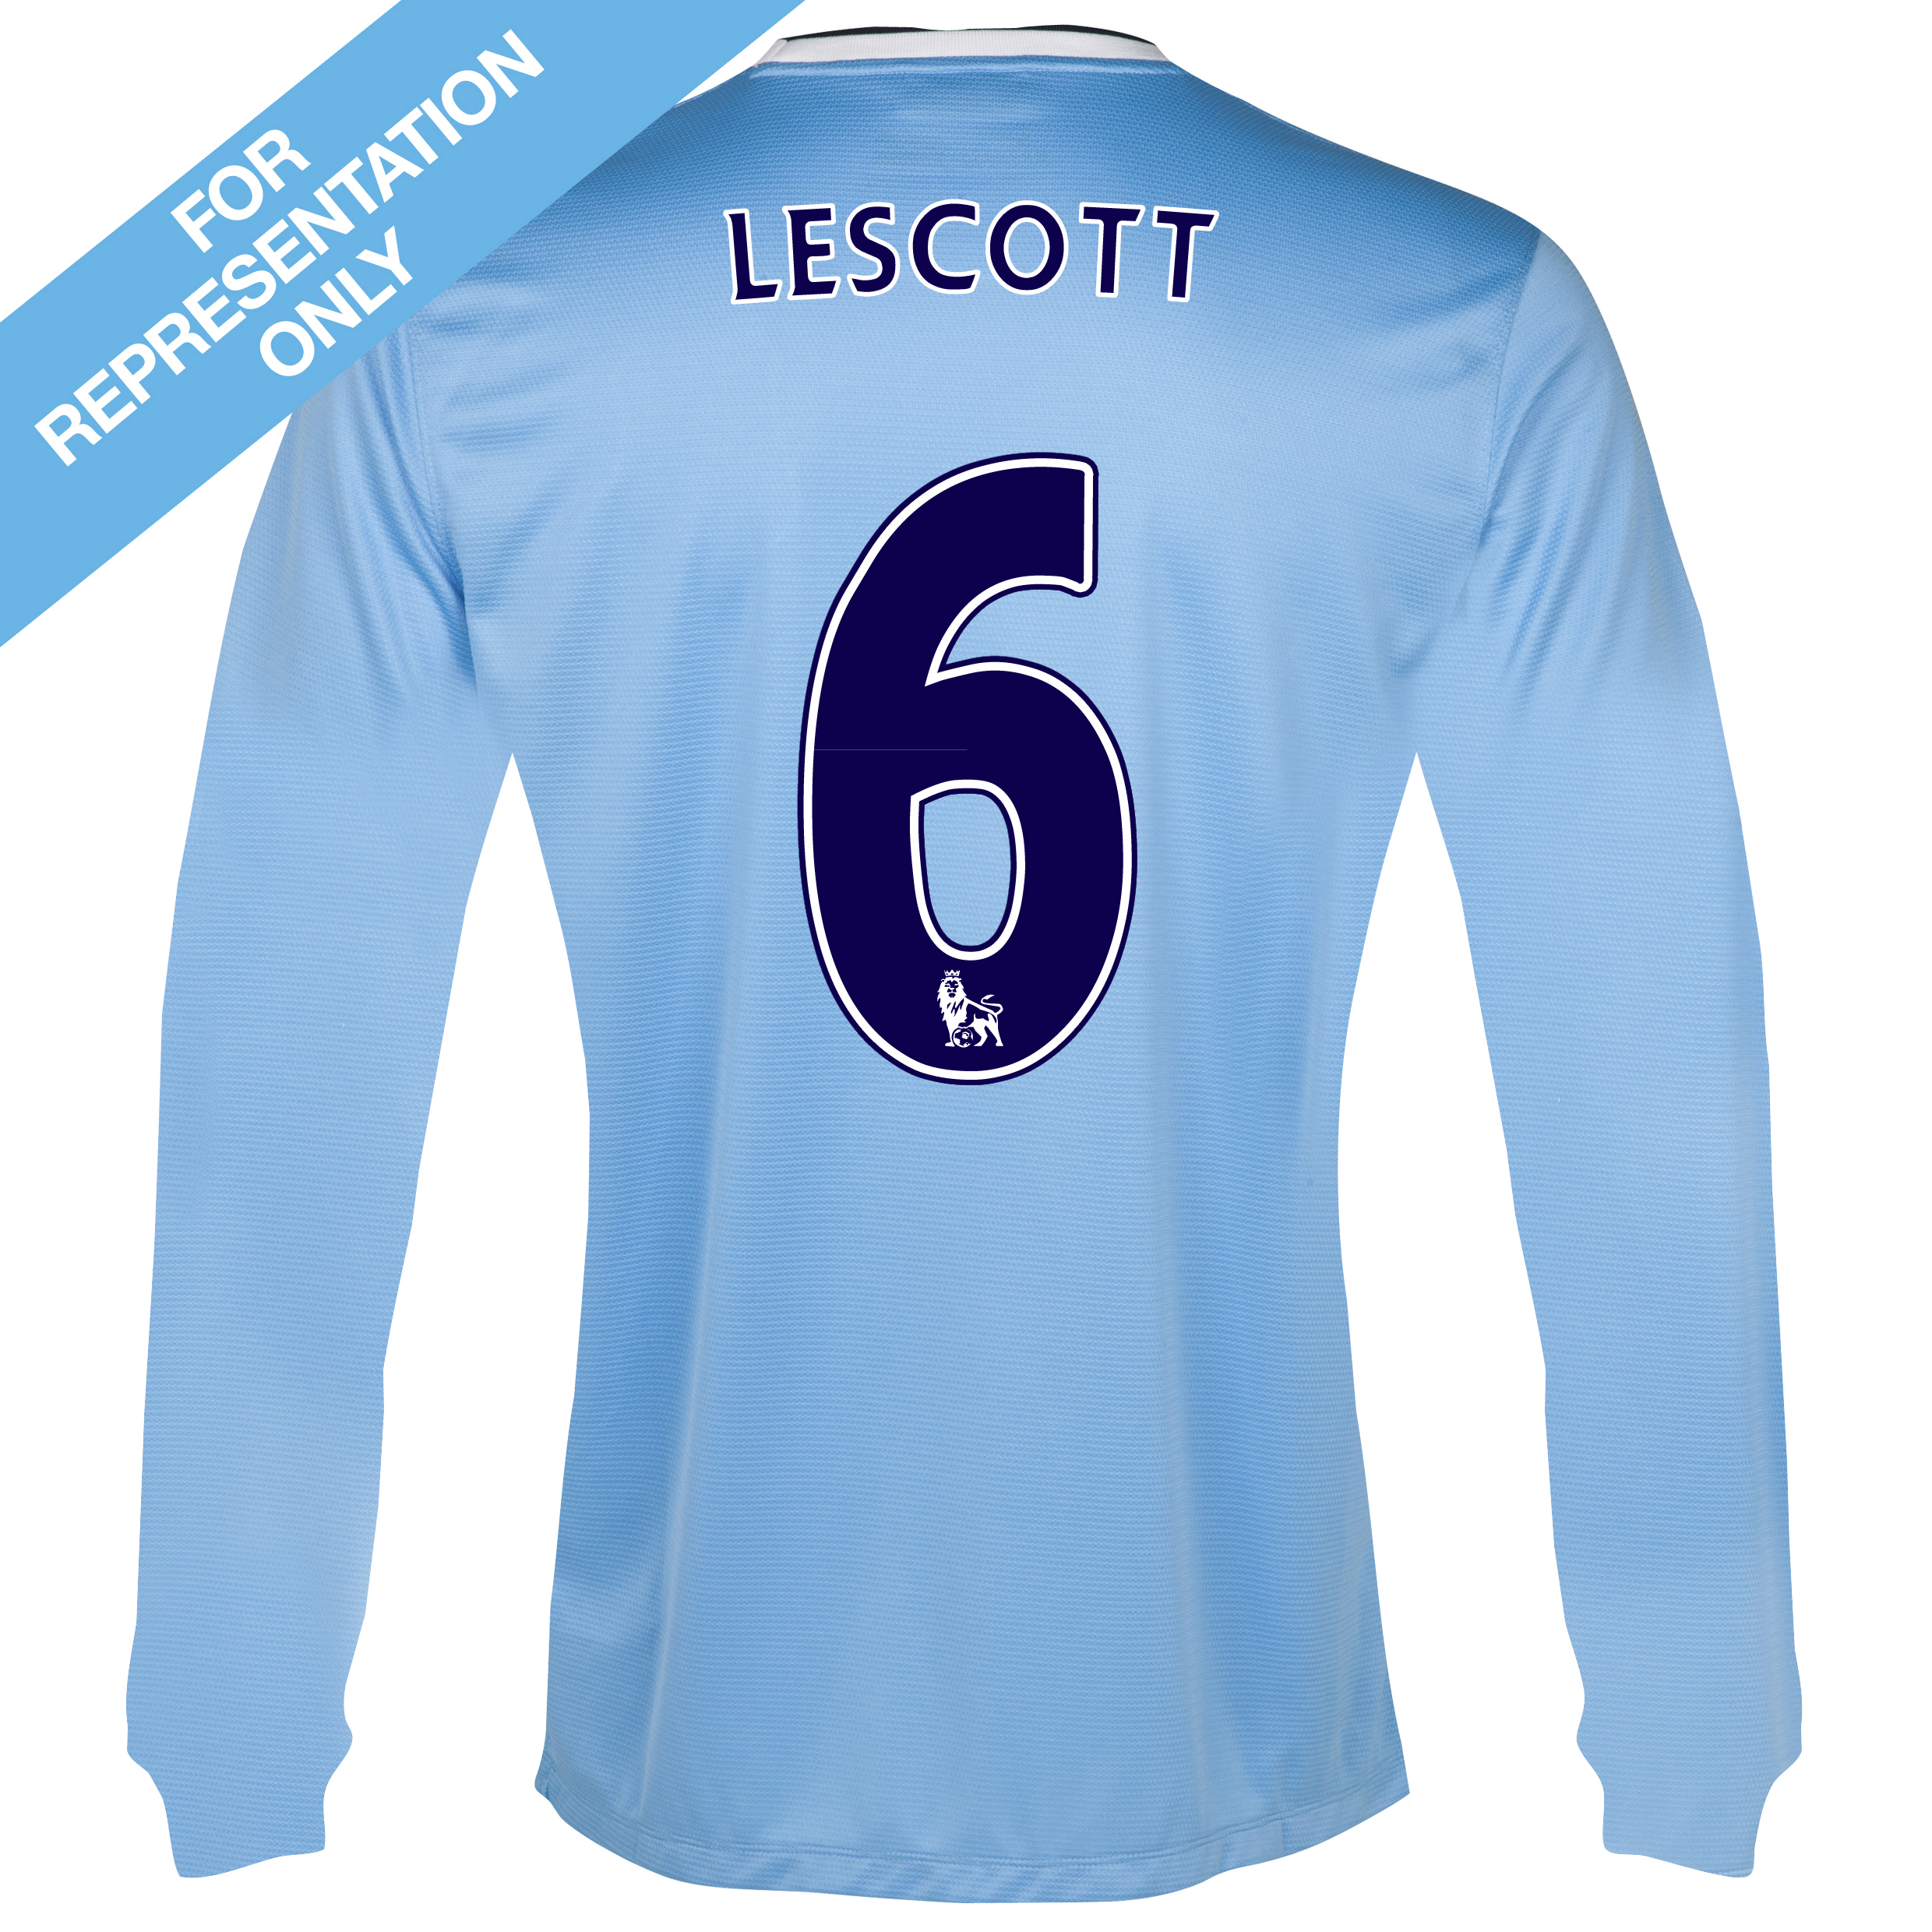 Manchester City Home Shirt 2013/14 - Long Sleeved with Lescott 6 printing